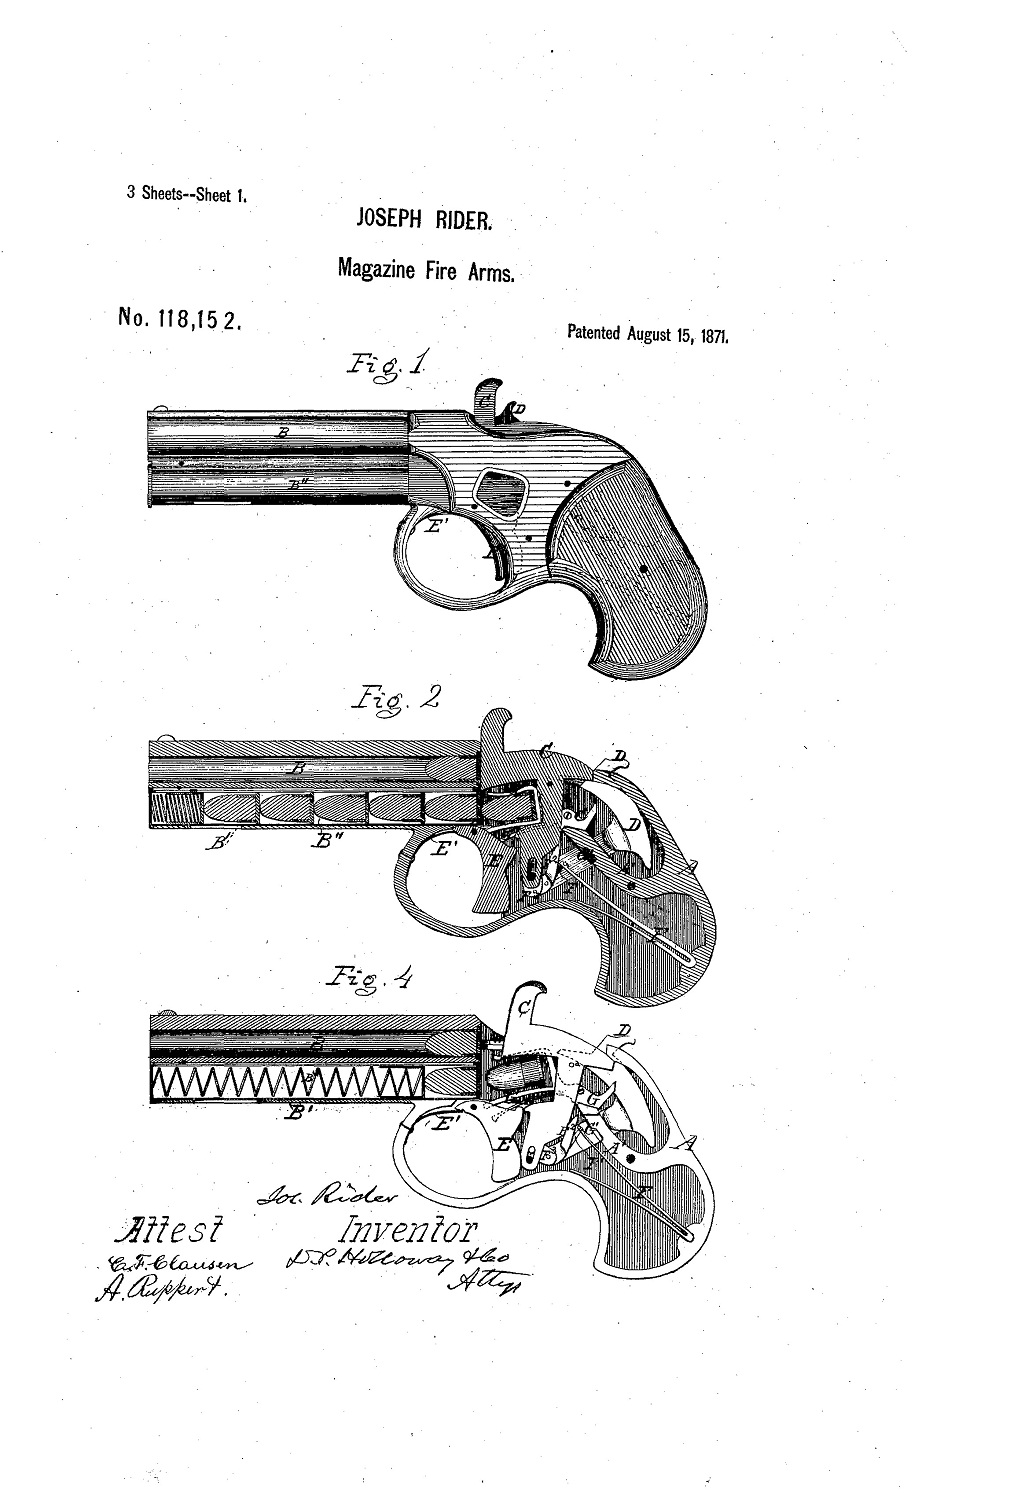 Patent Remington Rider Magazine Pistol